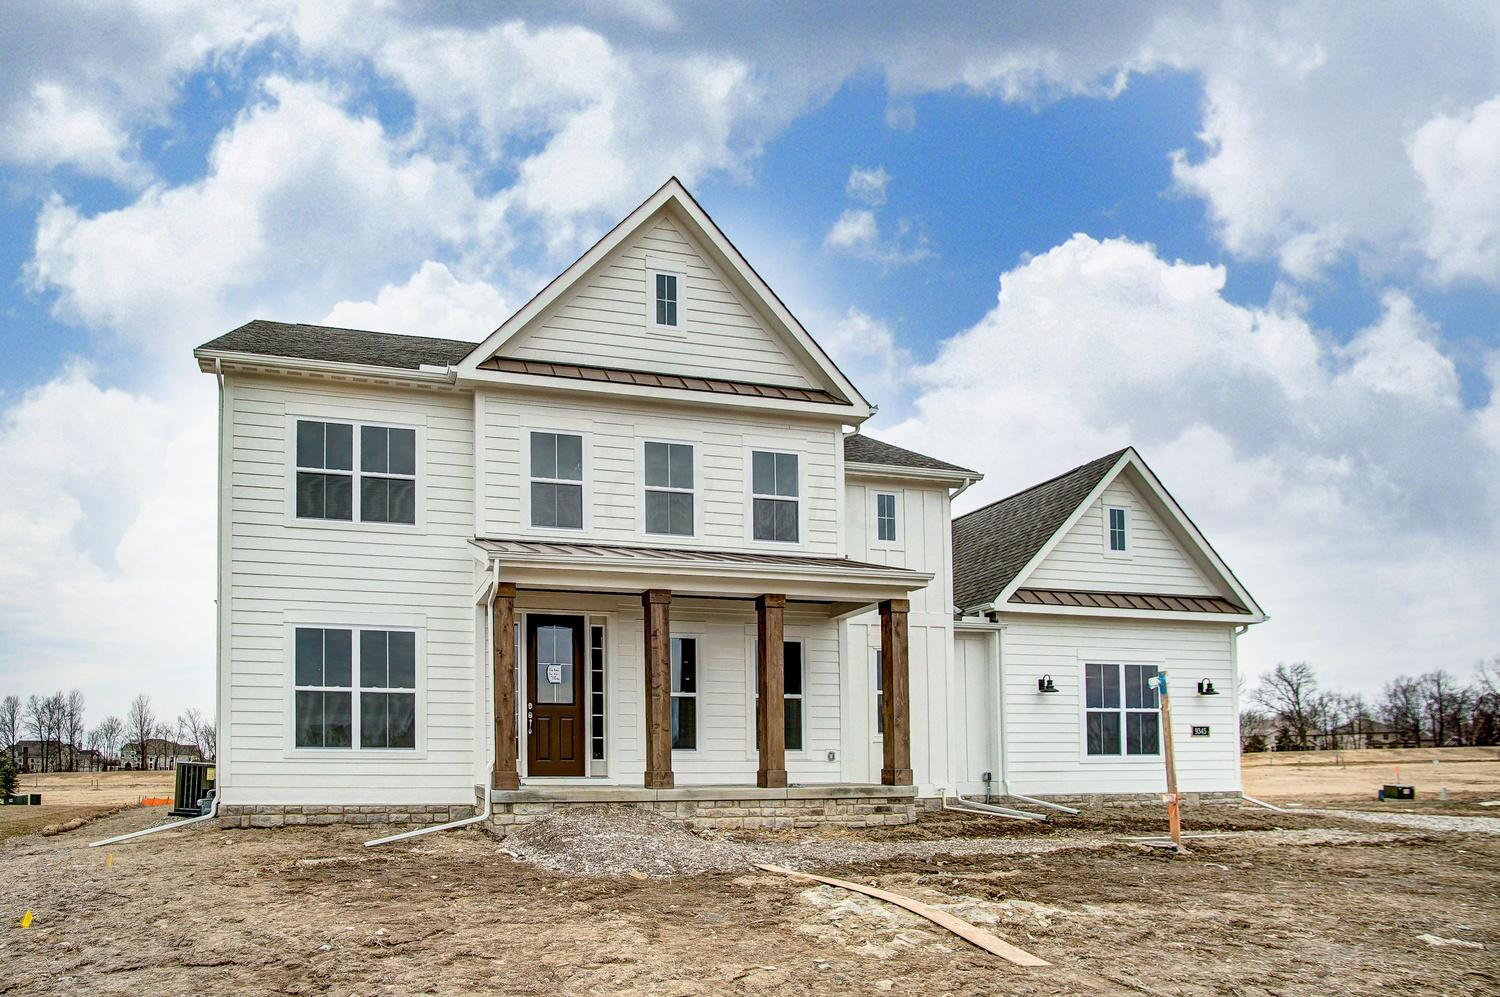 Photo of 9345 Baytree Drive, Powell, OH 43065